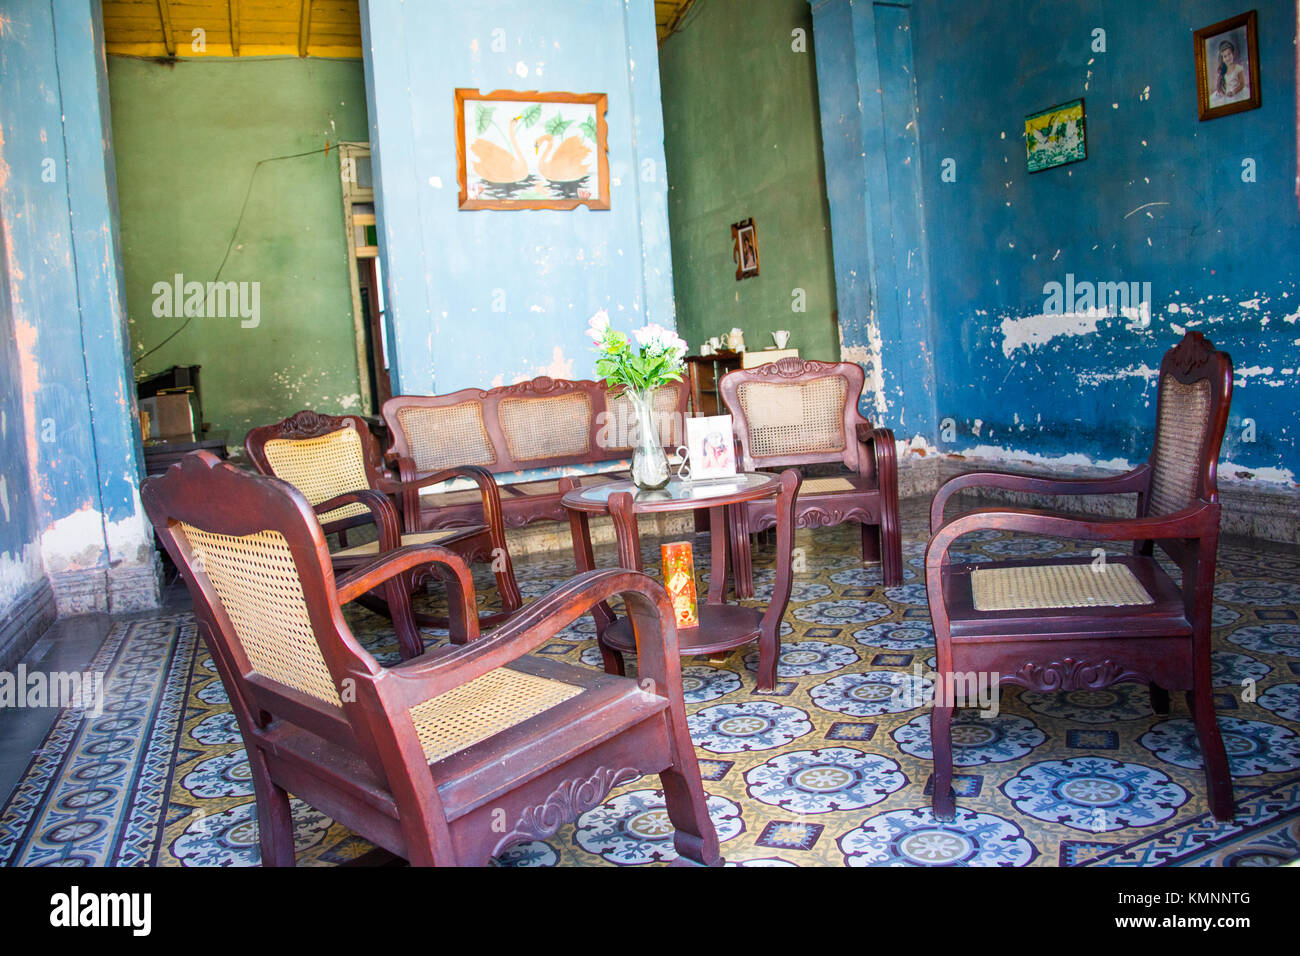 Furniture in a typical livingroom in Cienfuegos, Cuba - Stock Image